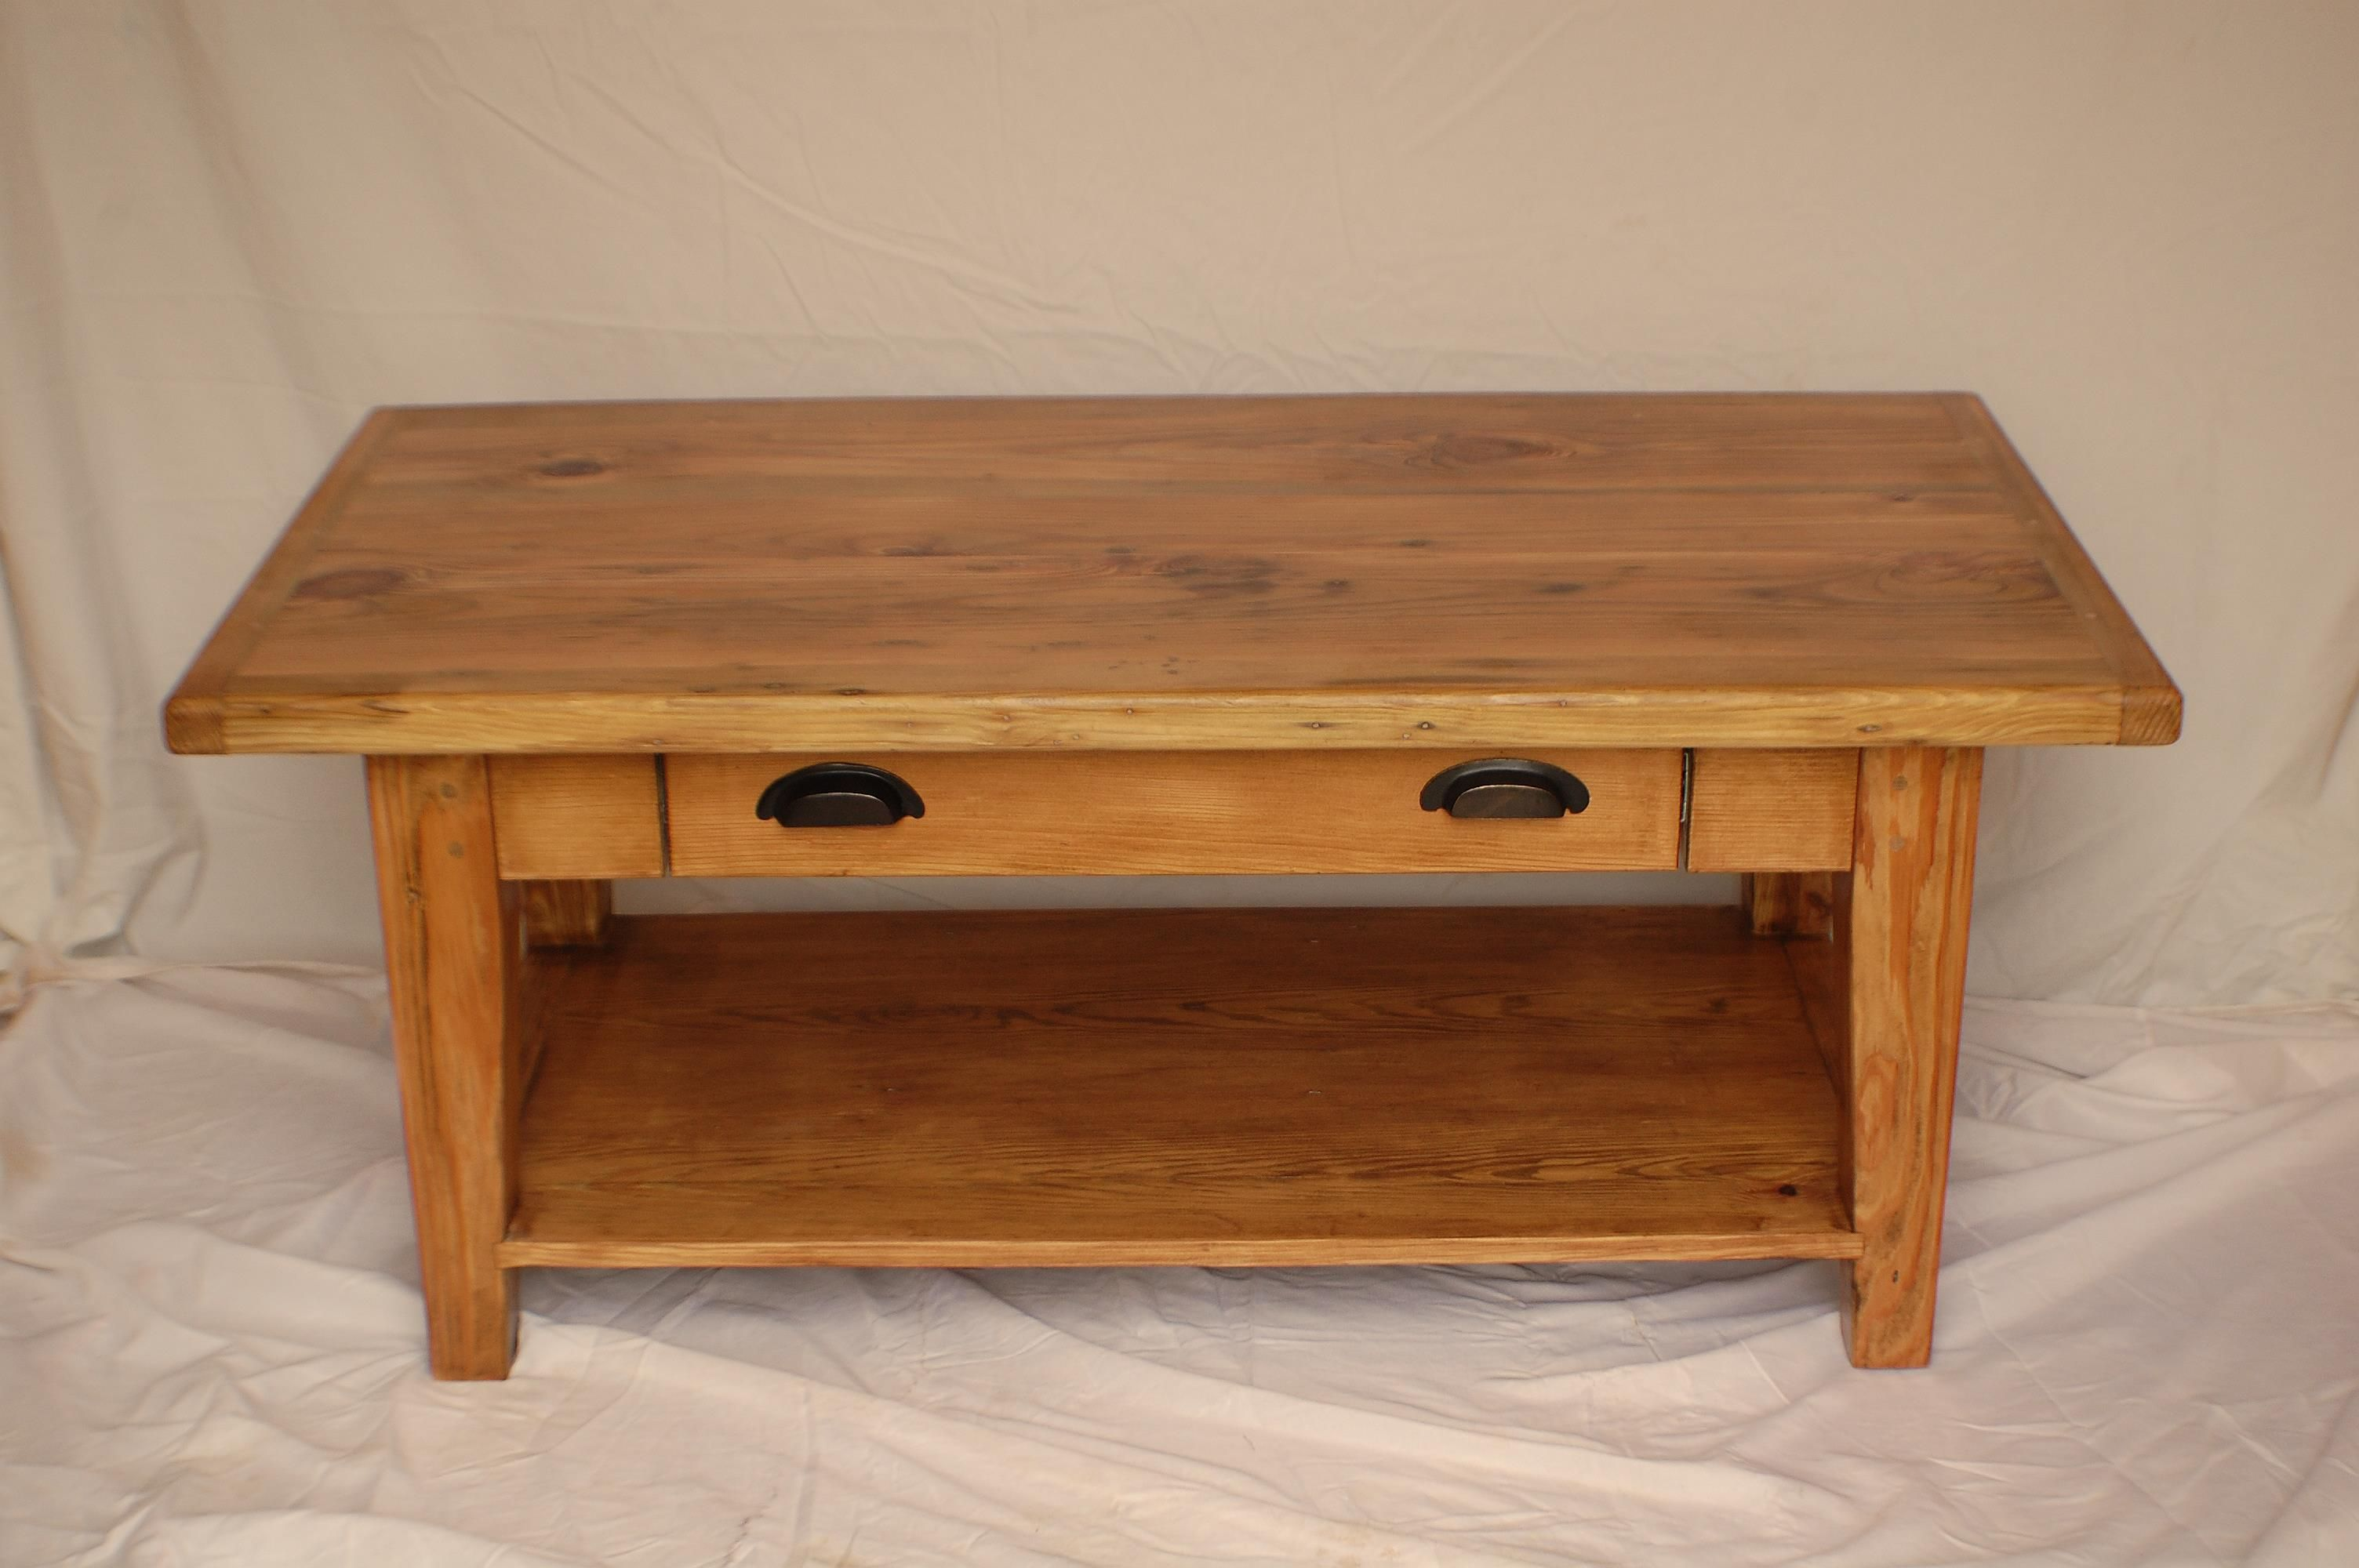 Buy a custom reclaimed heart pine coffee table with drawer and shelf made to order from Pine coffee table with drawers